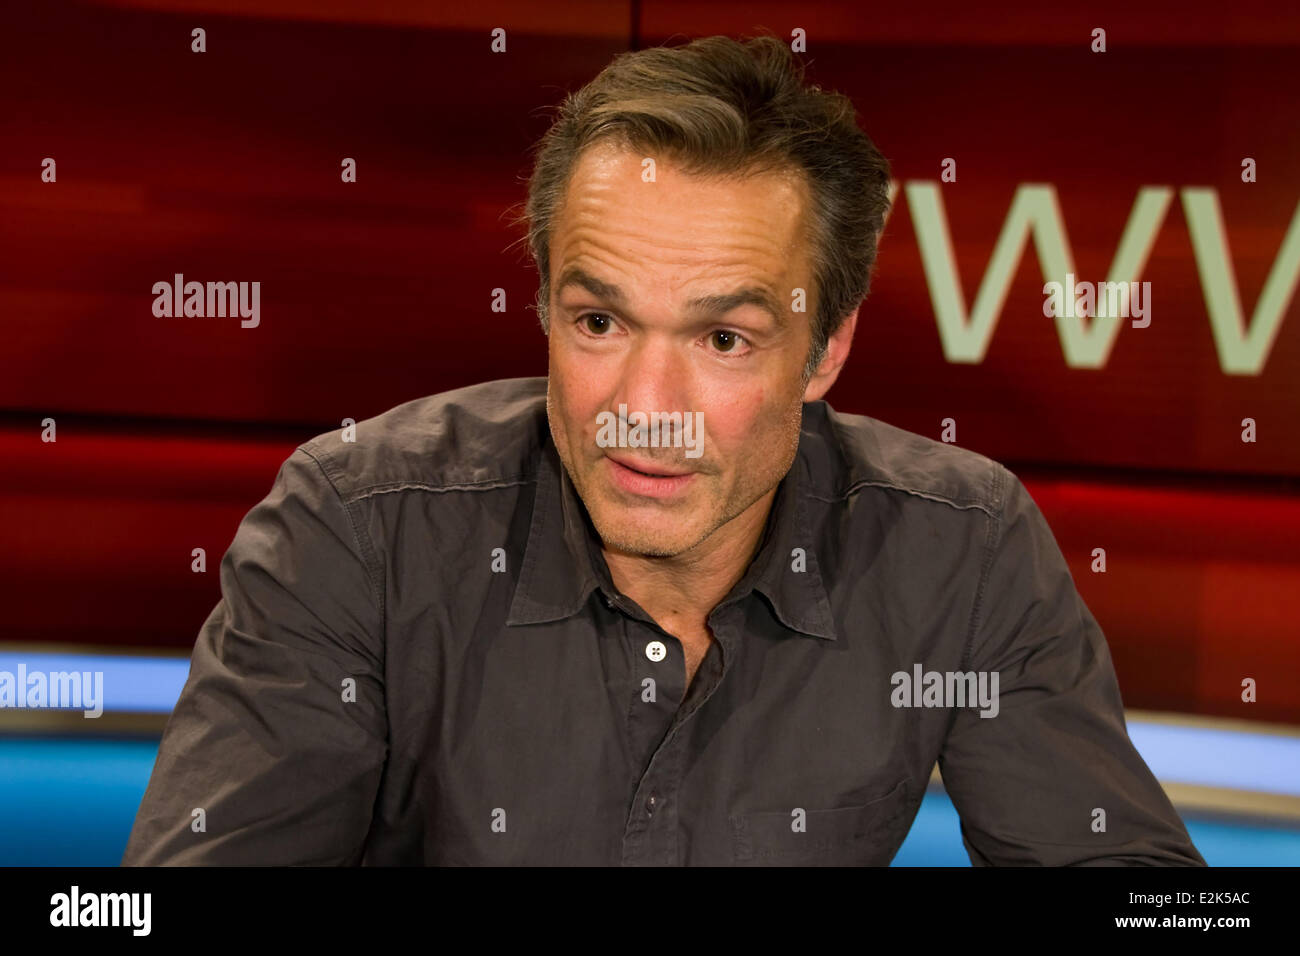 Hannes Jaenicke on German ARD TV show Hart aber fair at WDR Studios.  Where: Cologne, Germany When: 29 Apr 2013 - Stock Image